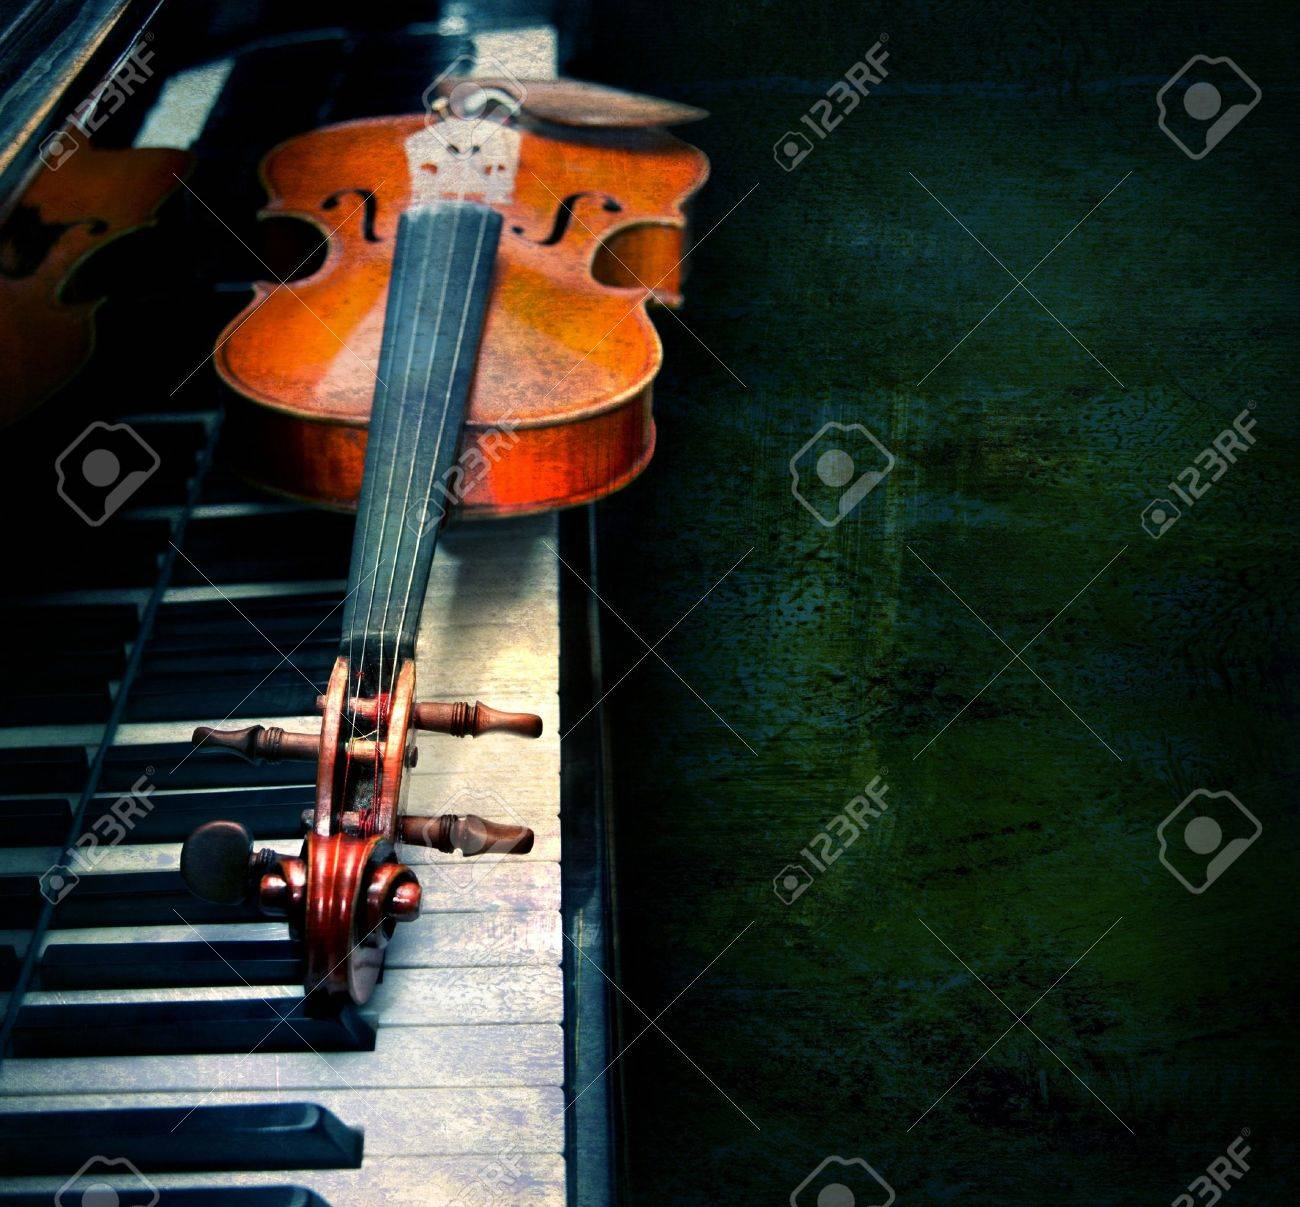 Violin on the piano on a grunge background Stock Photo - 11334061